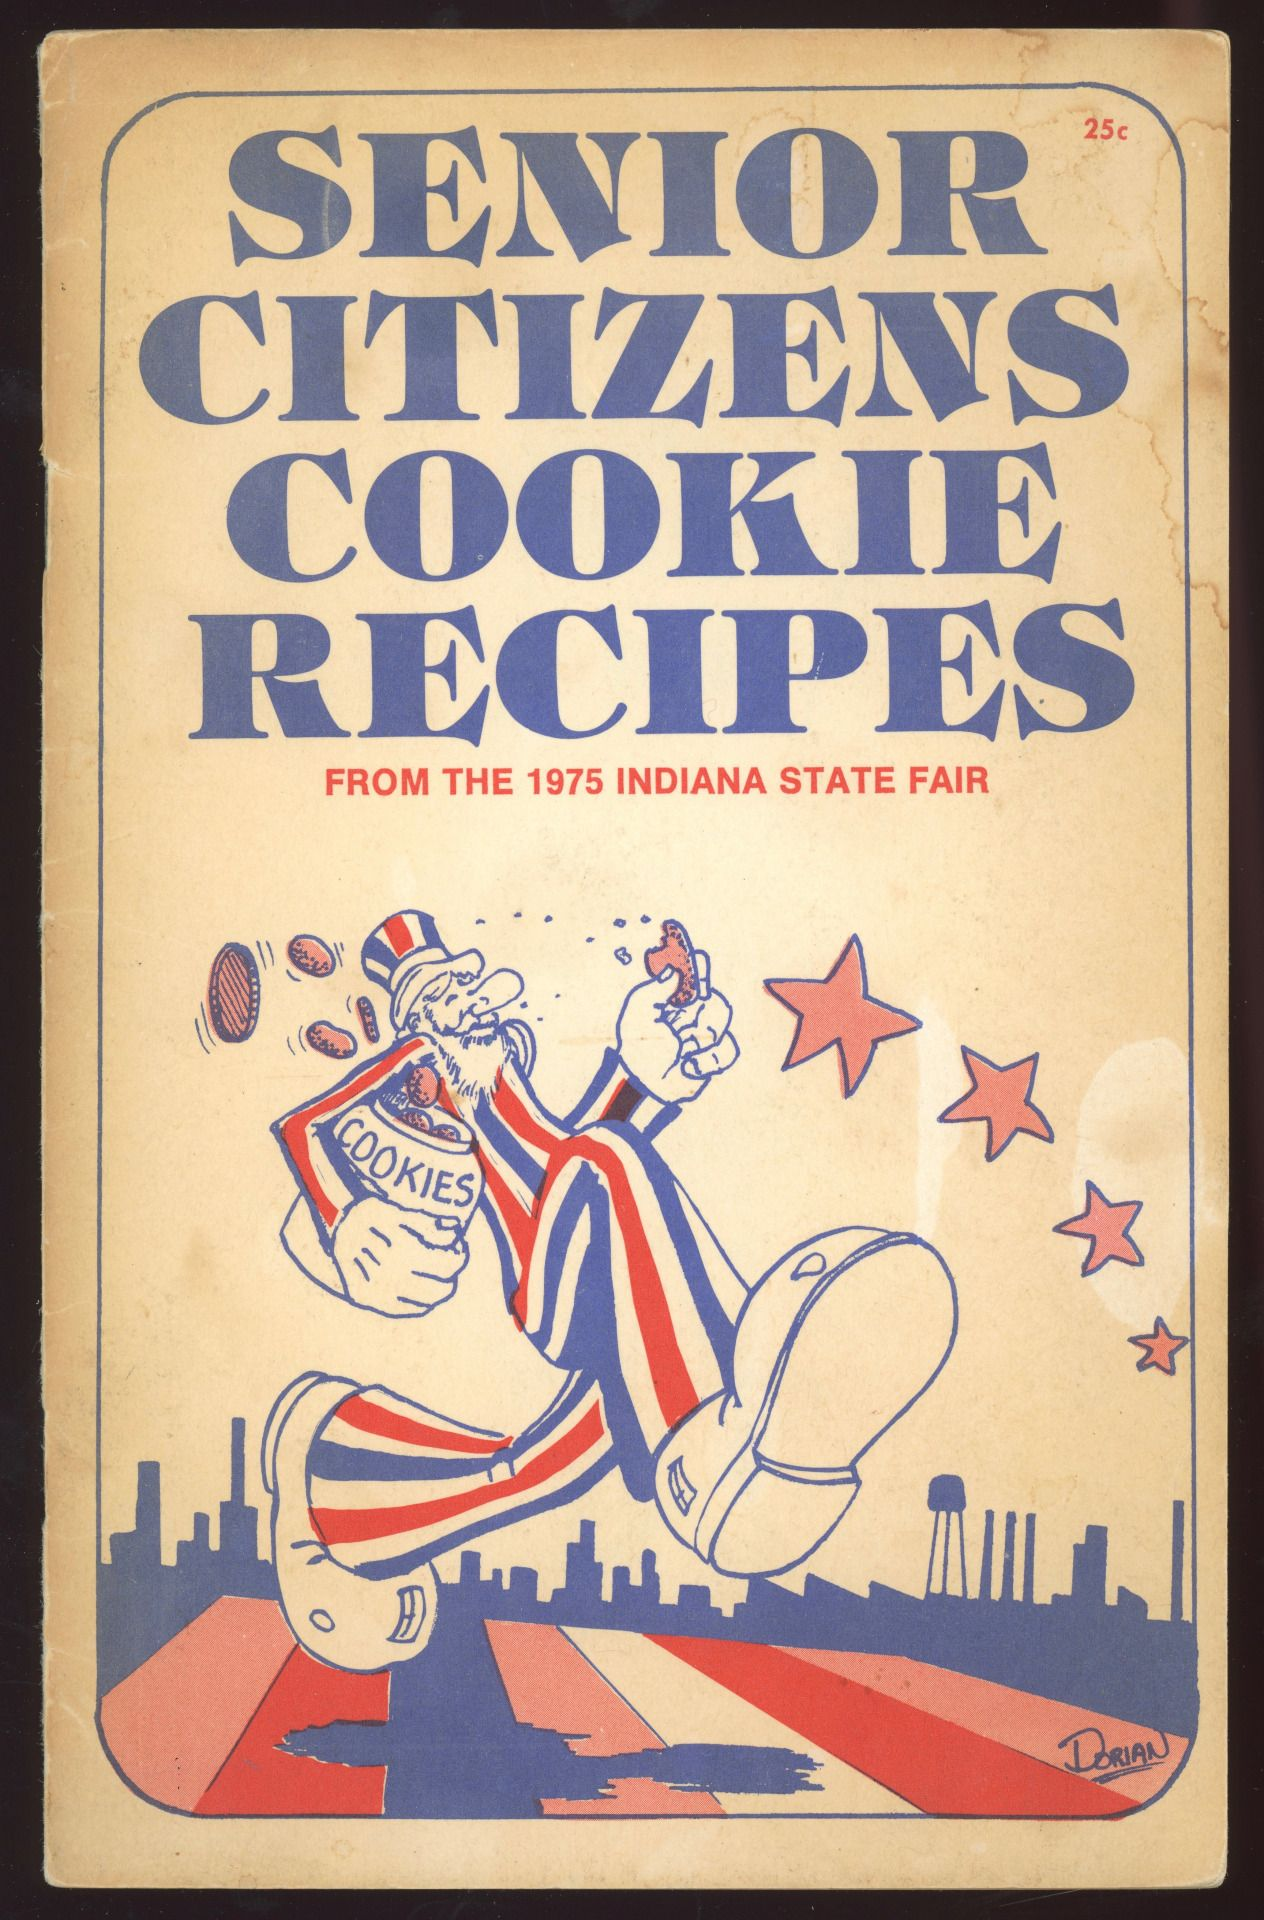 senior citizens cookie recipes from the 1975 indiana state